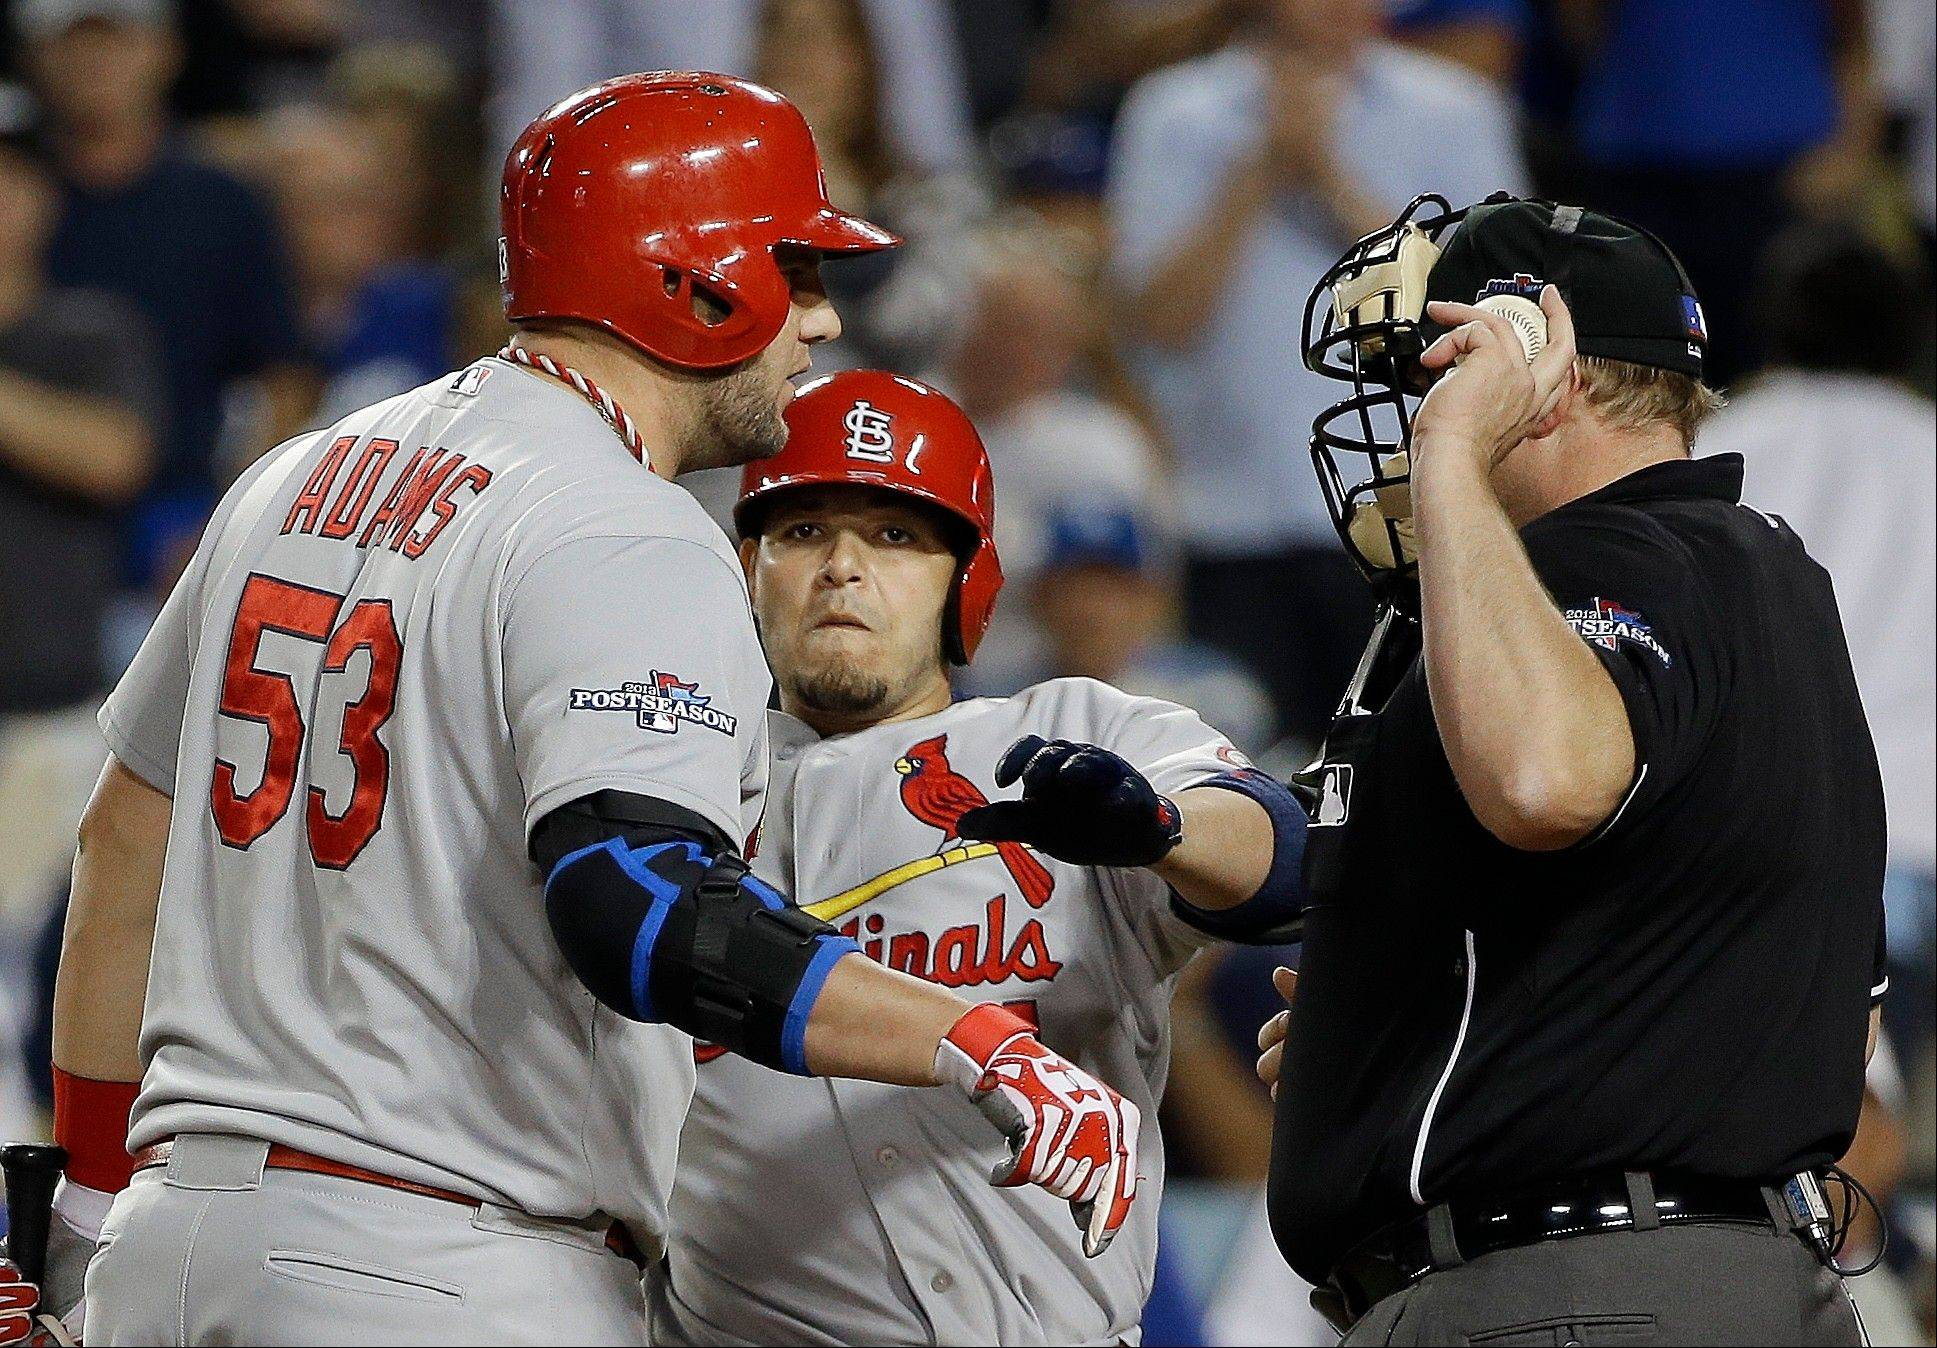 The Cardinals' Matt Adams argues a strike with umpire Bruce Dreckman as teammate Yadier Molina pulls him away during the ninth inning.